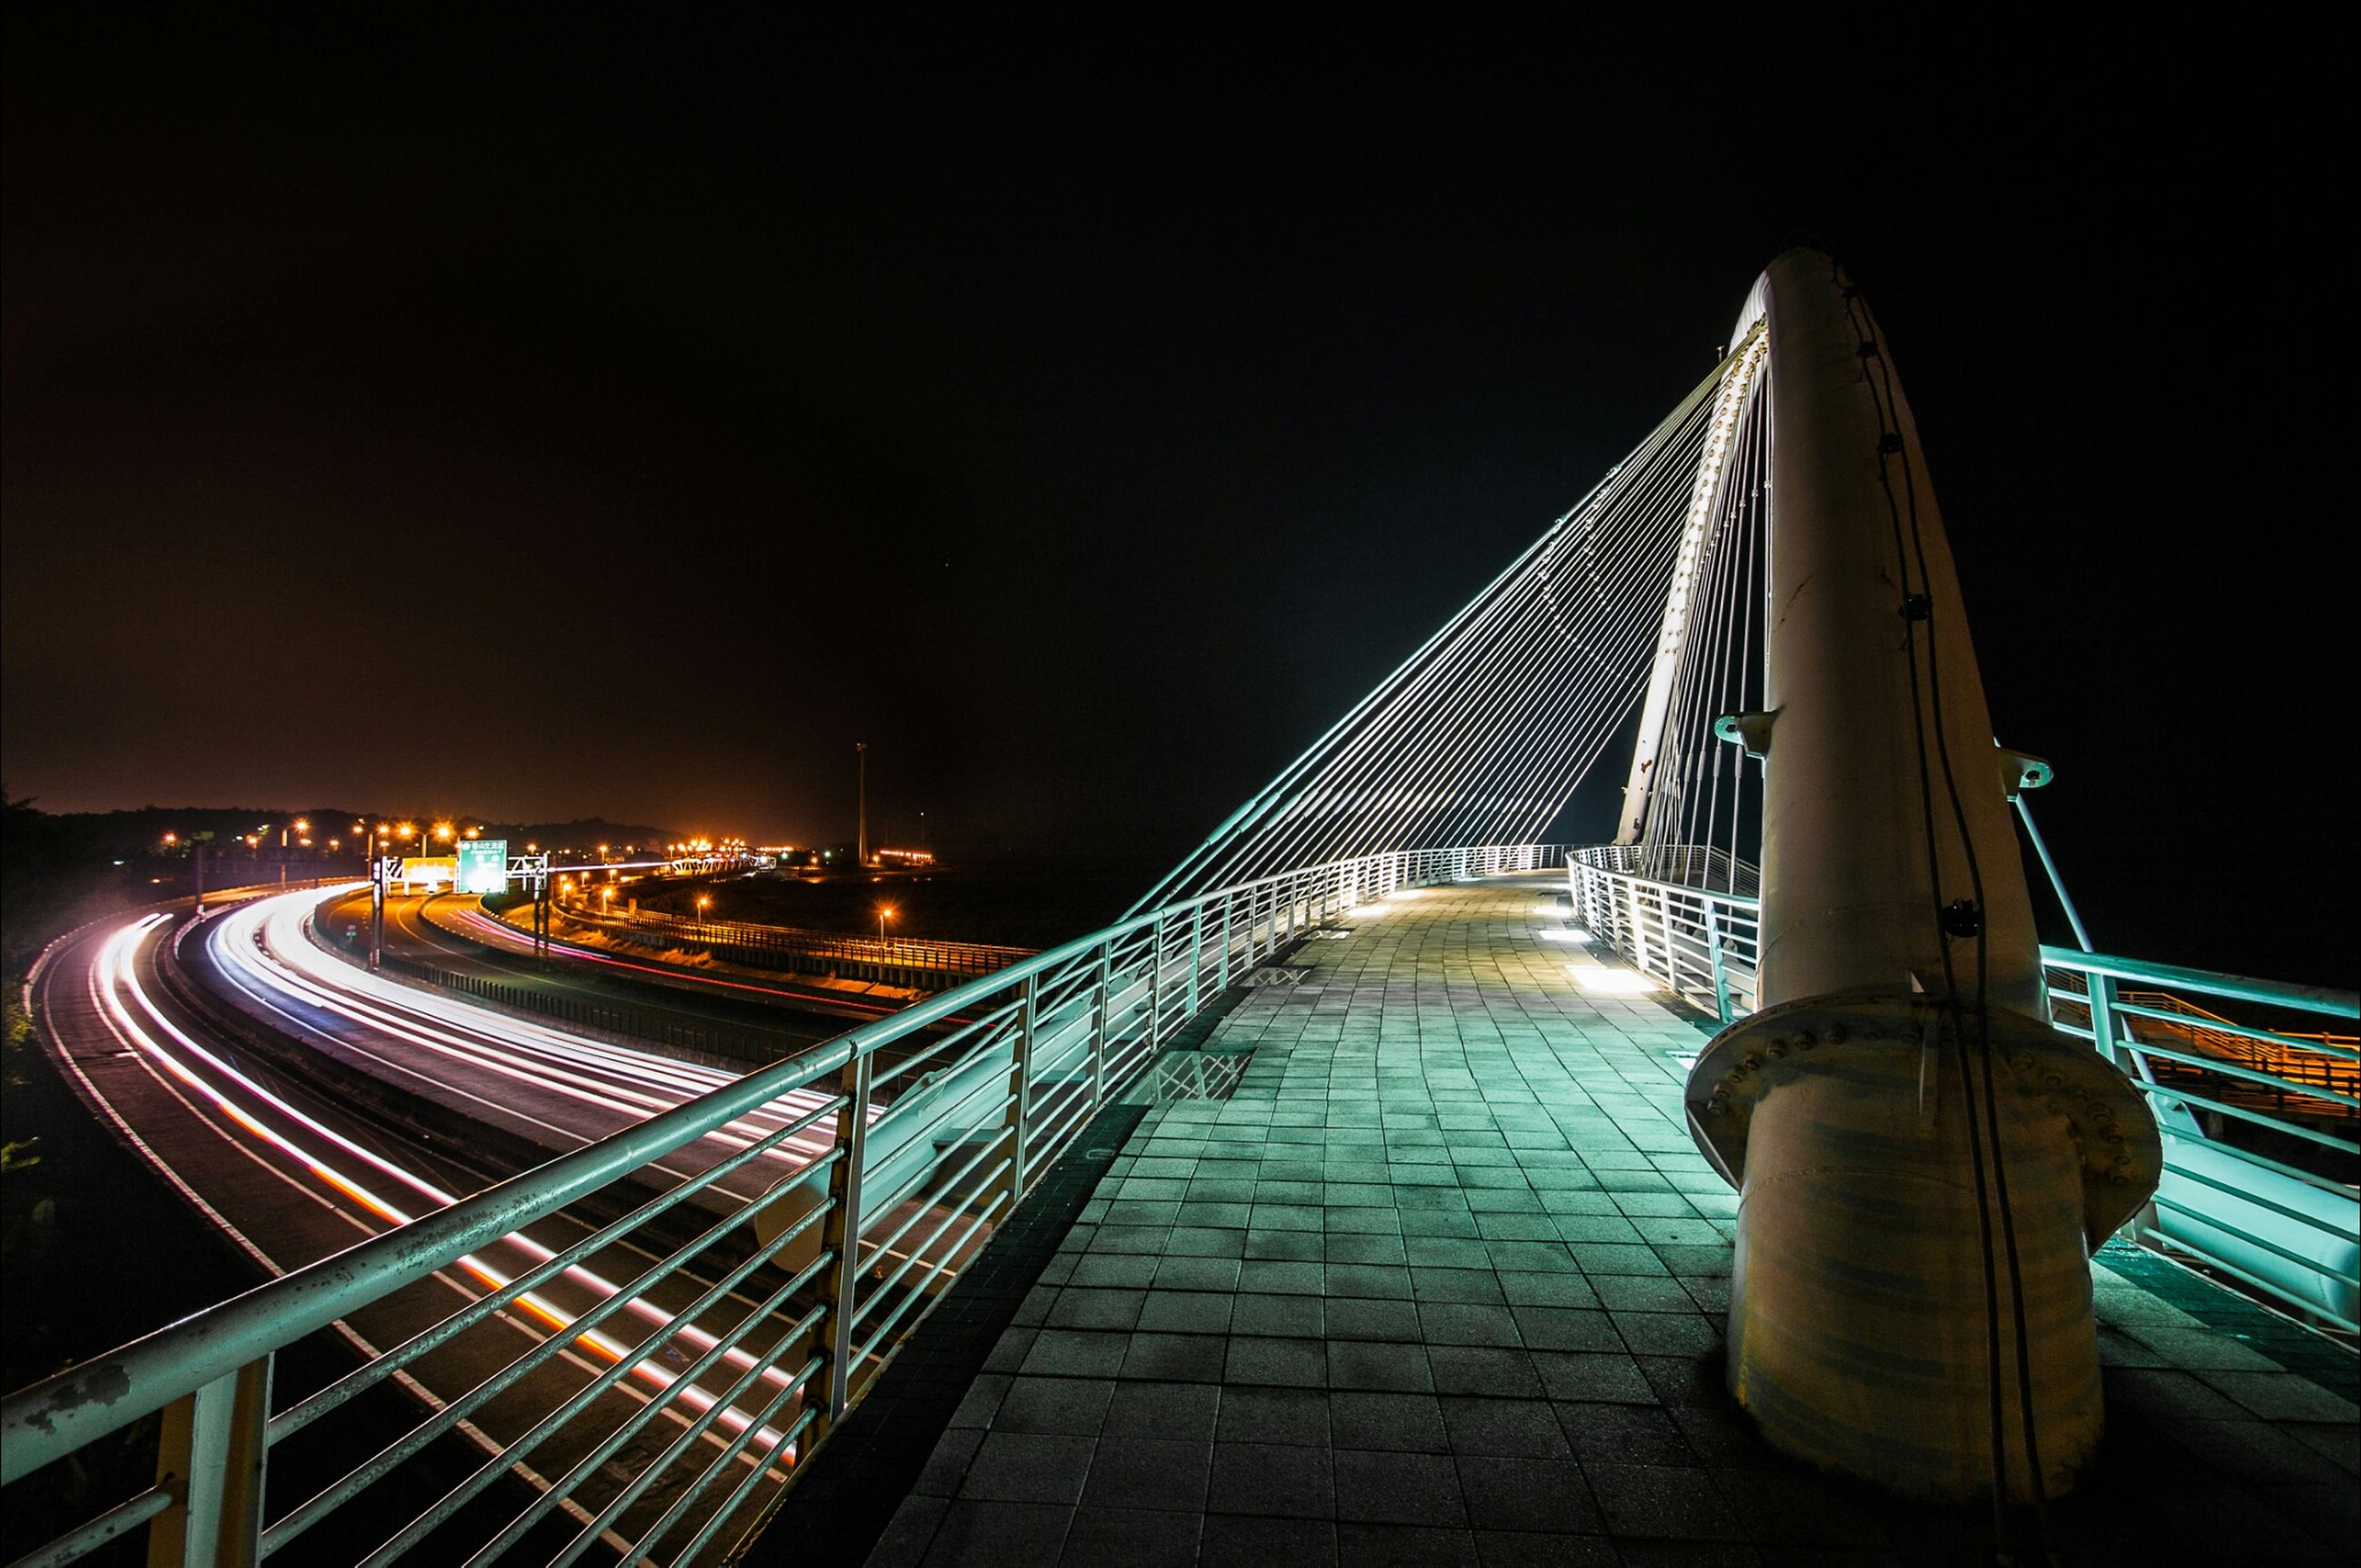 night, illuminated, architecture, built structure, bridge - man made structure, transportation, connection, clear sky, engineering, light trail, city, copy space, the way forward, travel destinations, suspension bridge, bridge, railing, travel, sky, building exterior